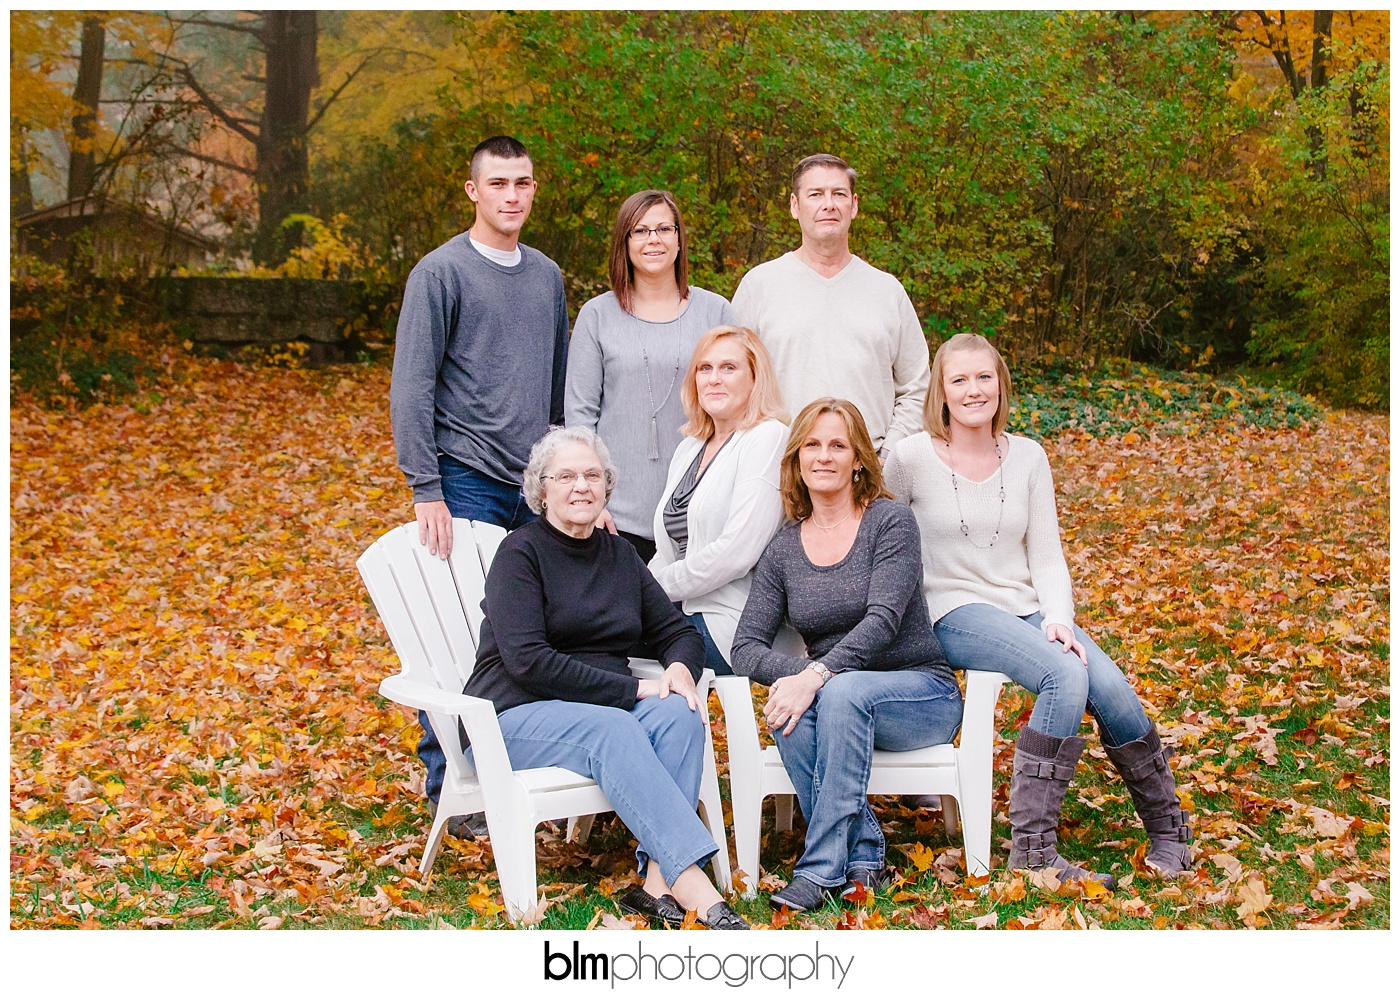 2016,20161018,9361,Ashley,BLM,BLM_9361,Boutwell Family,Boutwell-Family-Portraits,Brianna Morrissey,CCF,Cody,Cold Comfort Farm,Home,Mark,Morgan,NH,October,Outdoor,Personal,Pet,Peterborough,Photographer,Photography,Portrait,Sandy,Terry,